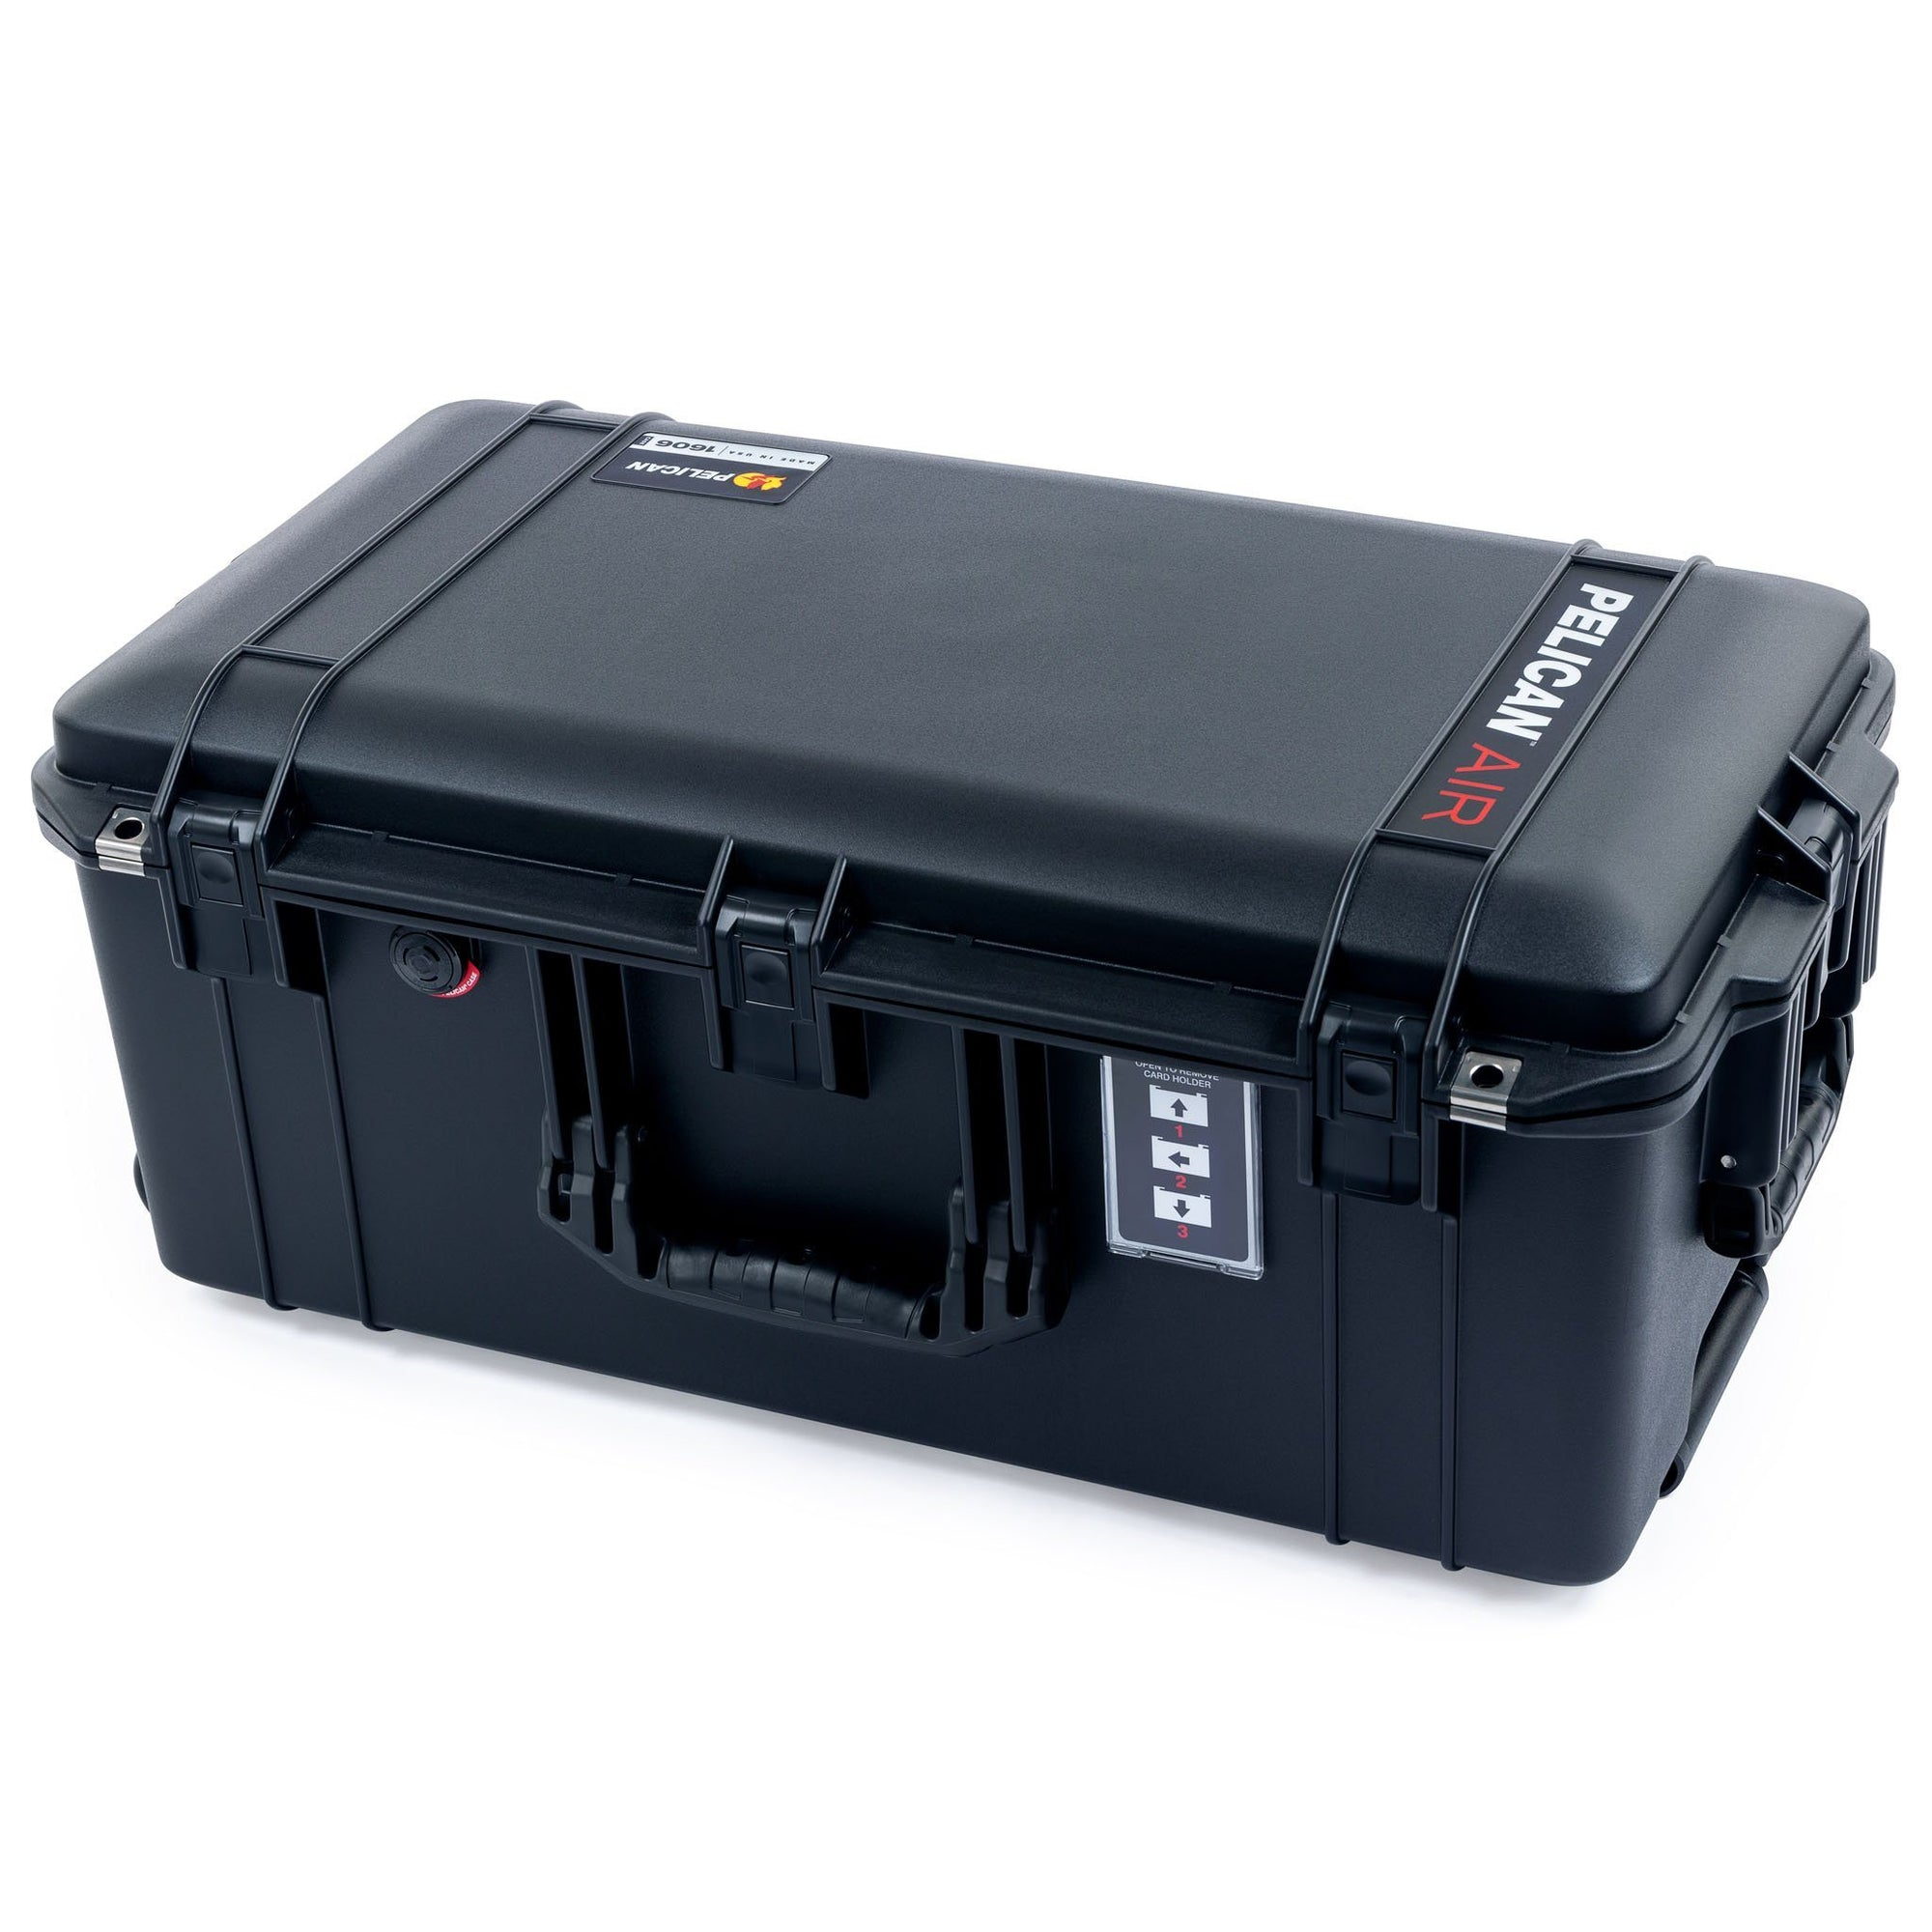 Pelican 1606 Air Case, Black with Press & Pull™ Latches - Pelican Color Case